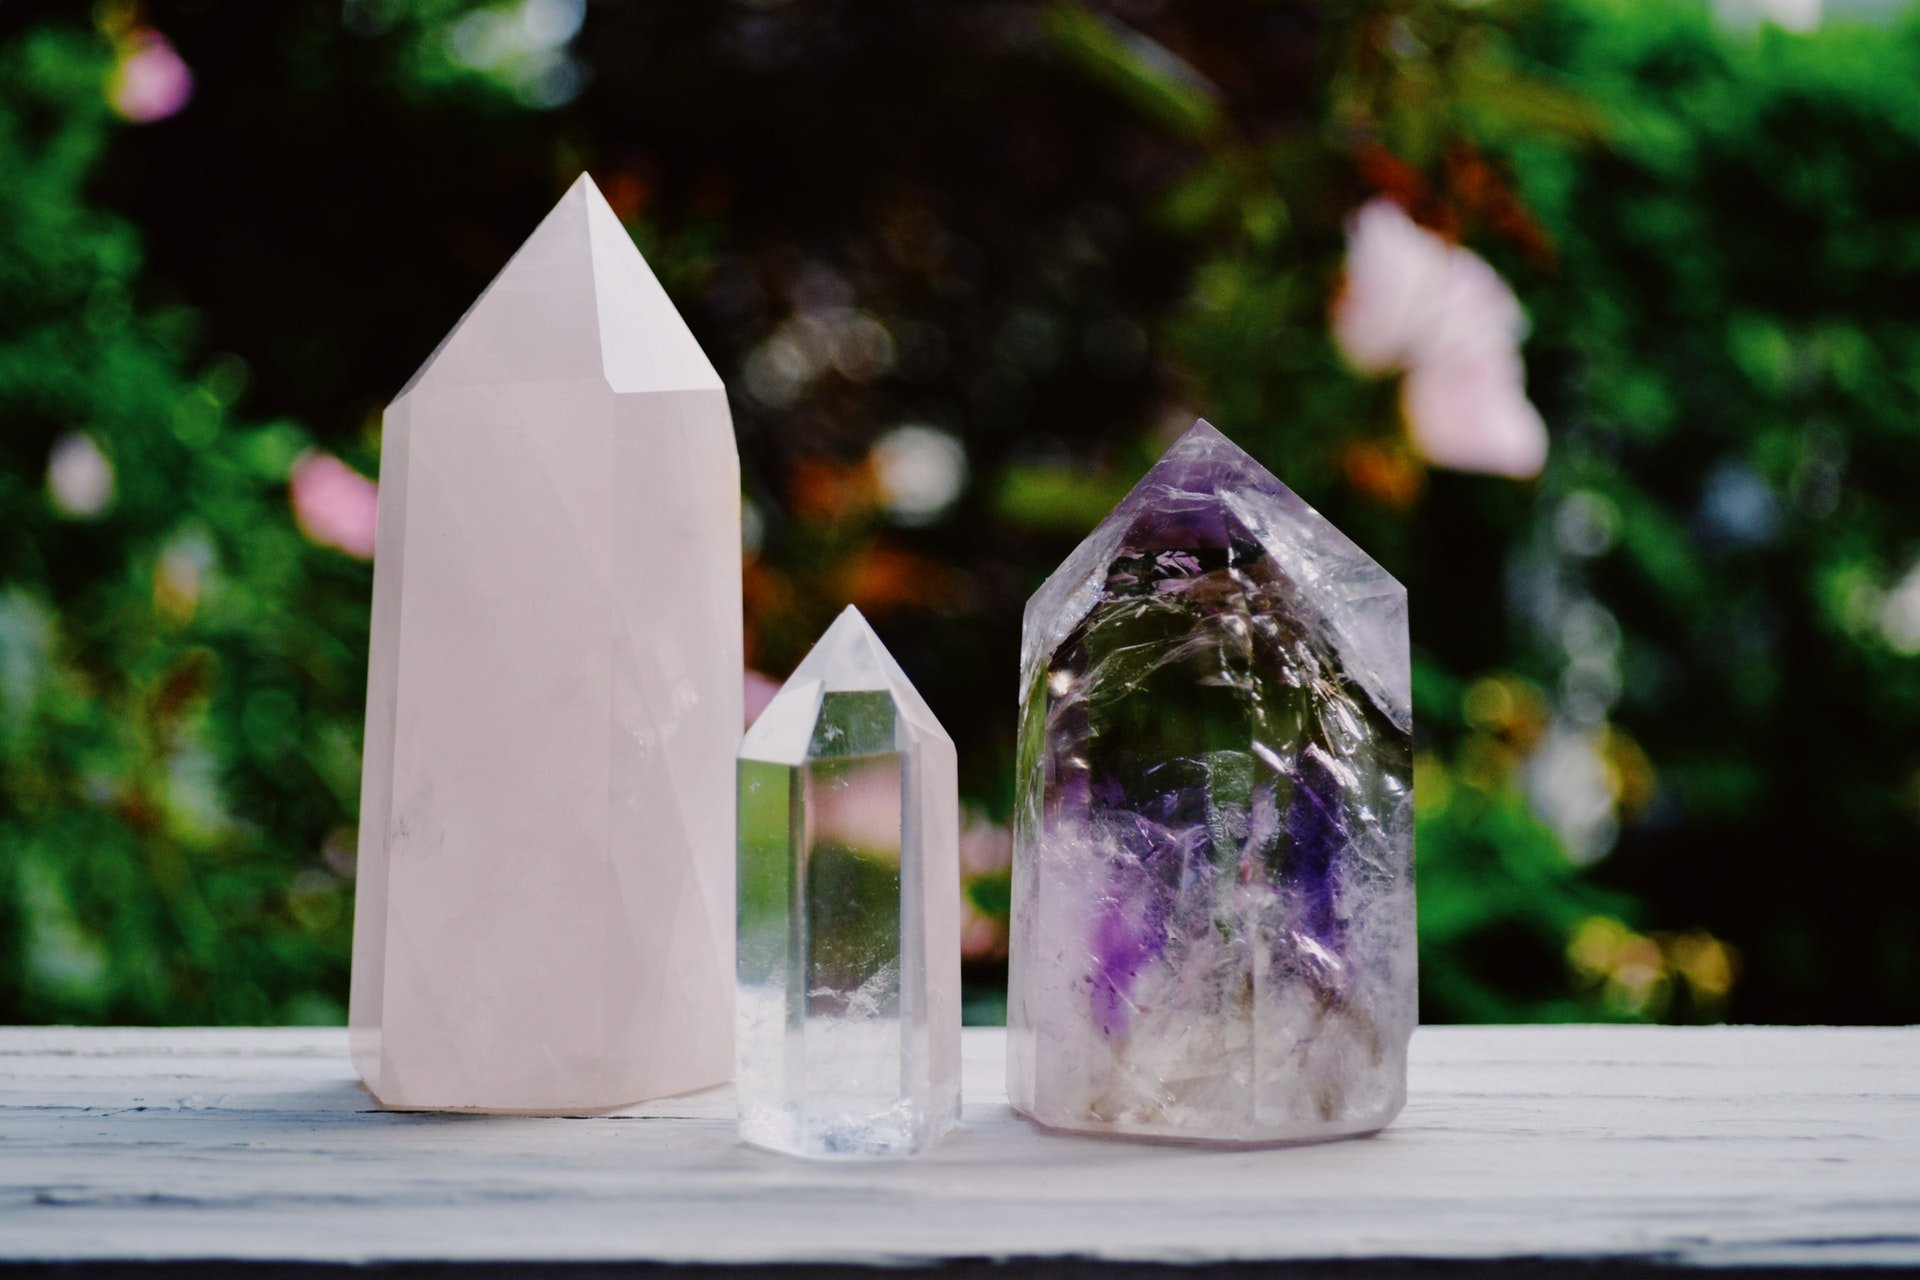 Wicca Stones and Crystals